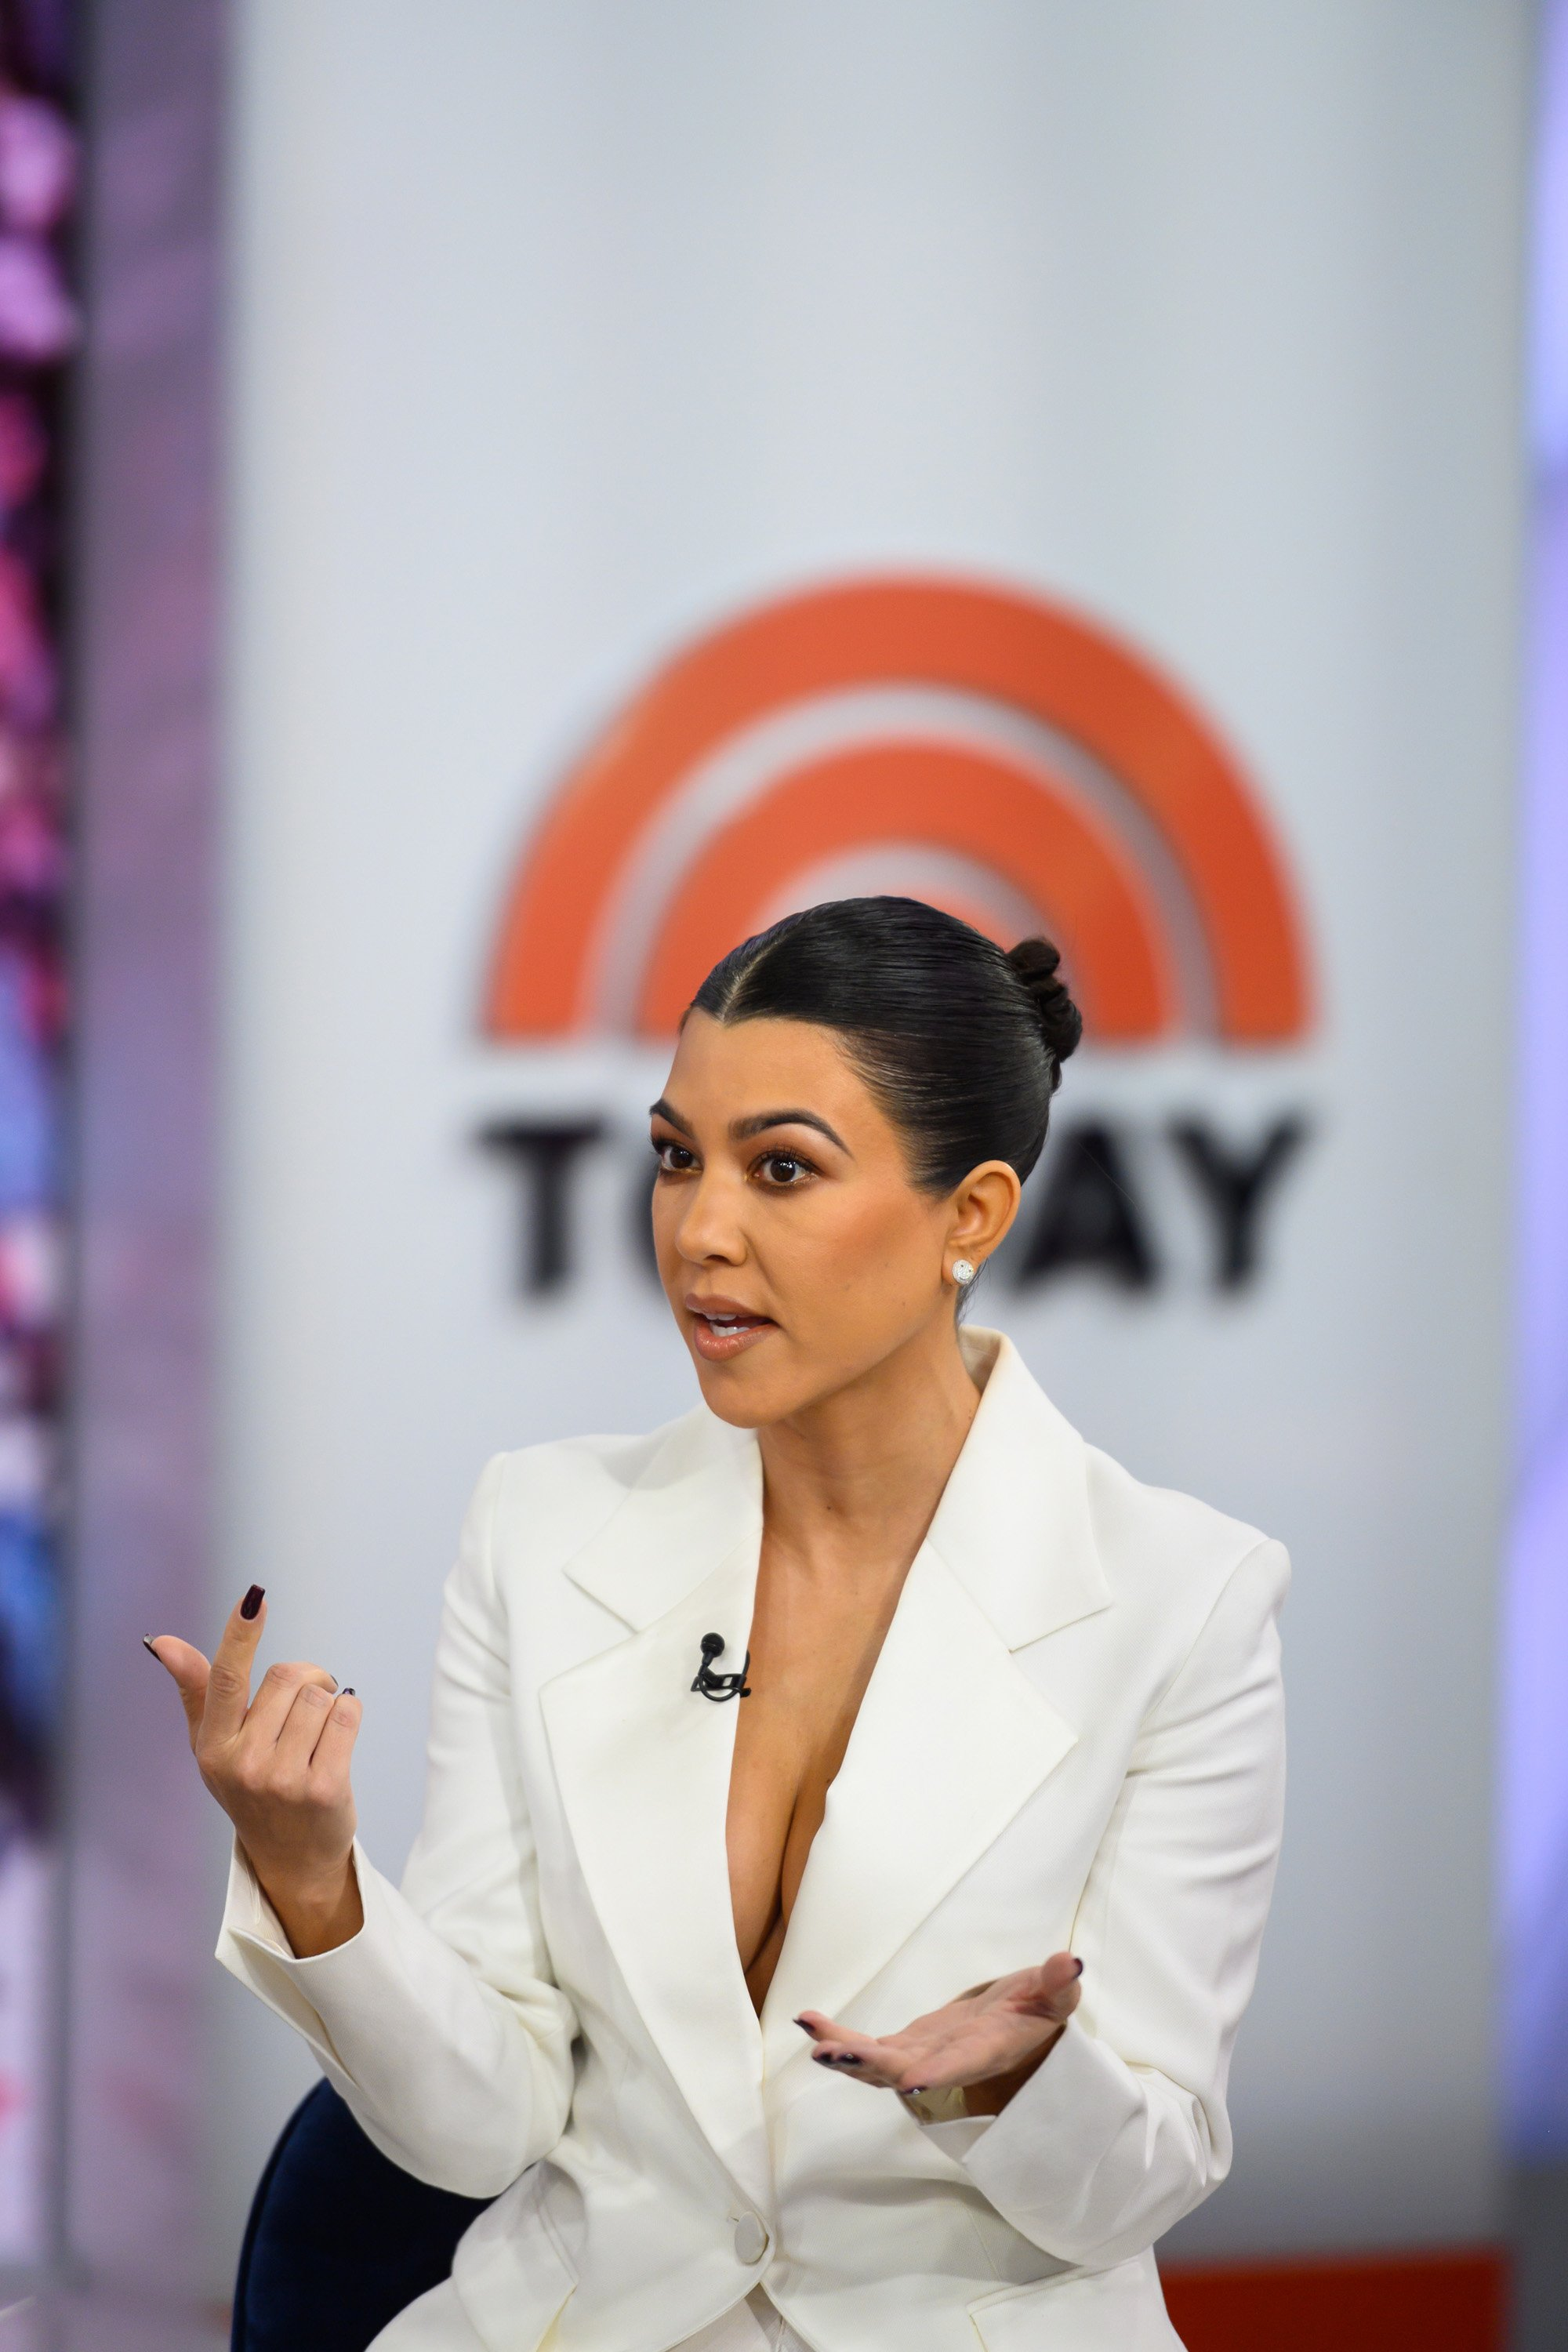 Kourtney Kardashian on the Today Show, February 7, 2019 | Photo: Getty Images